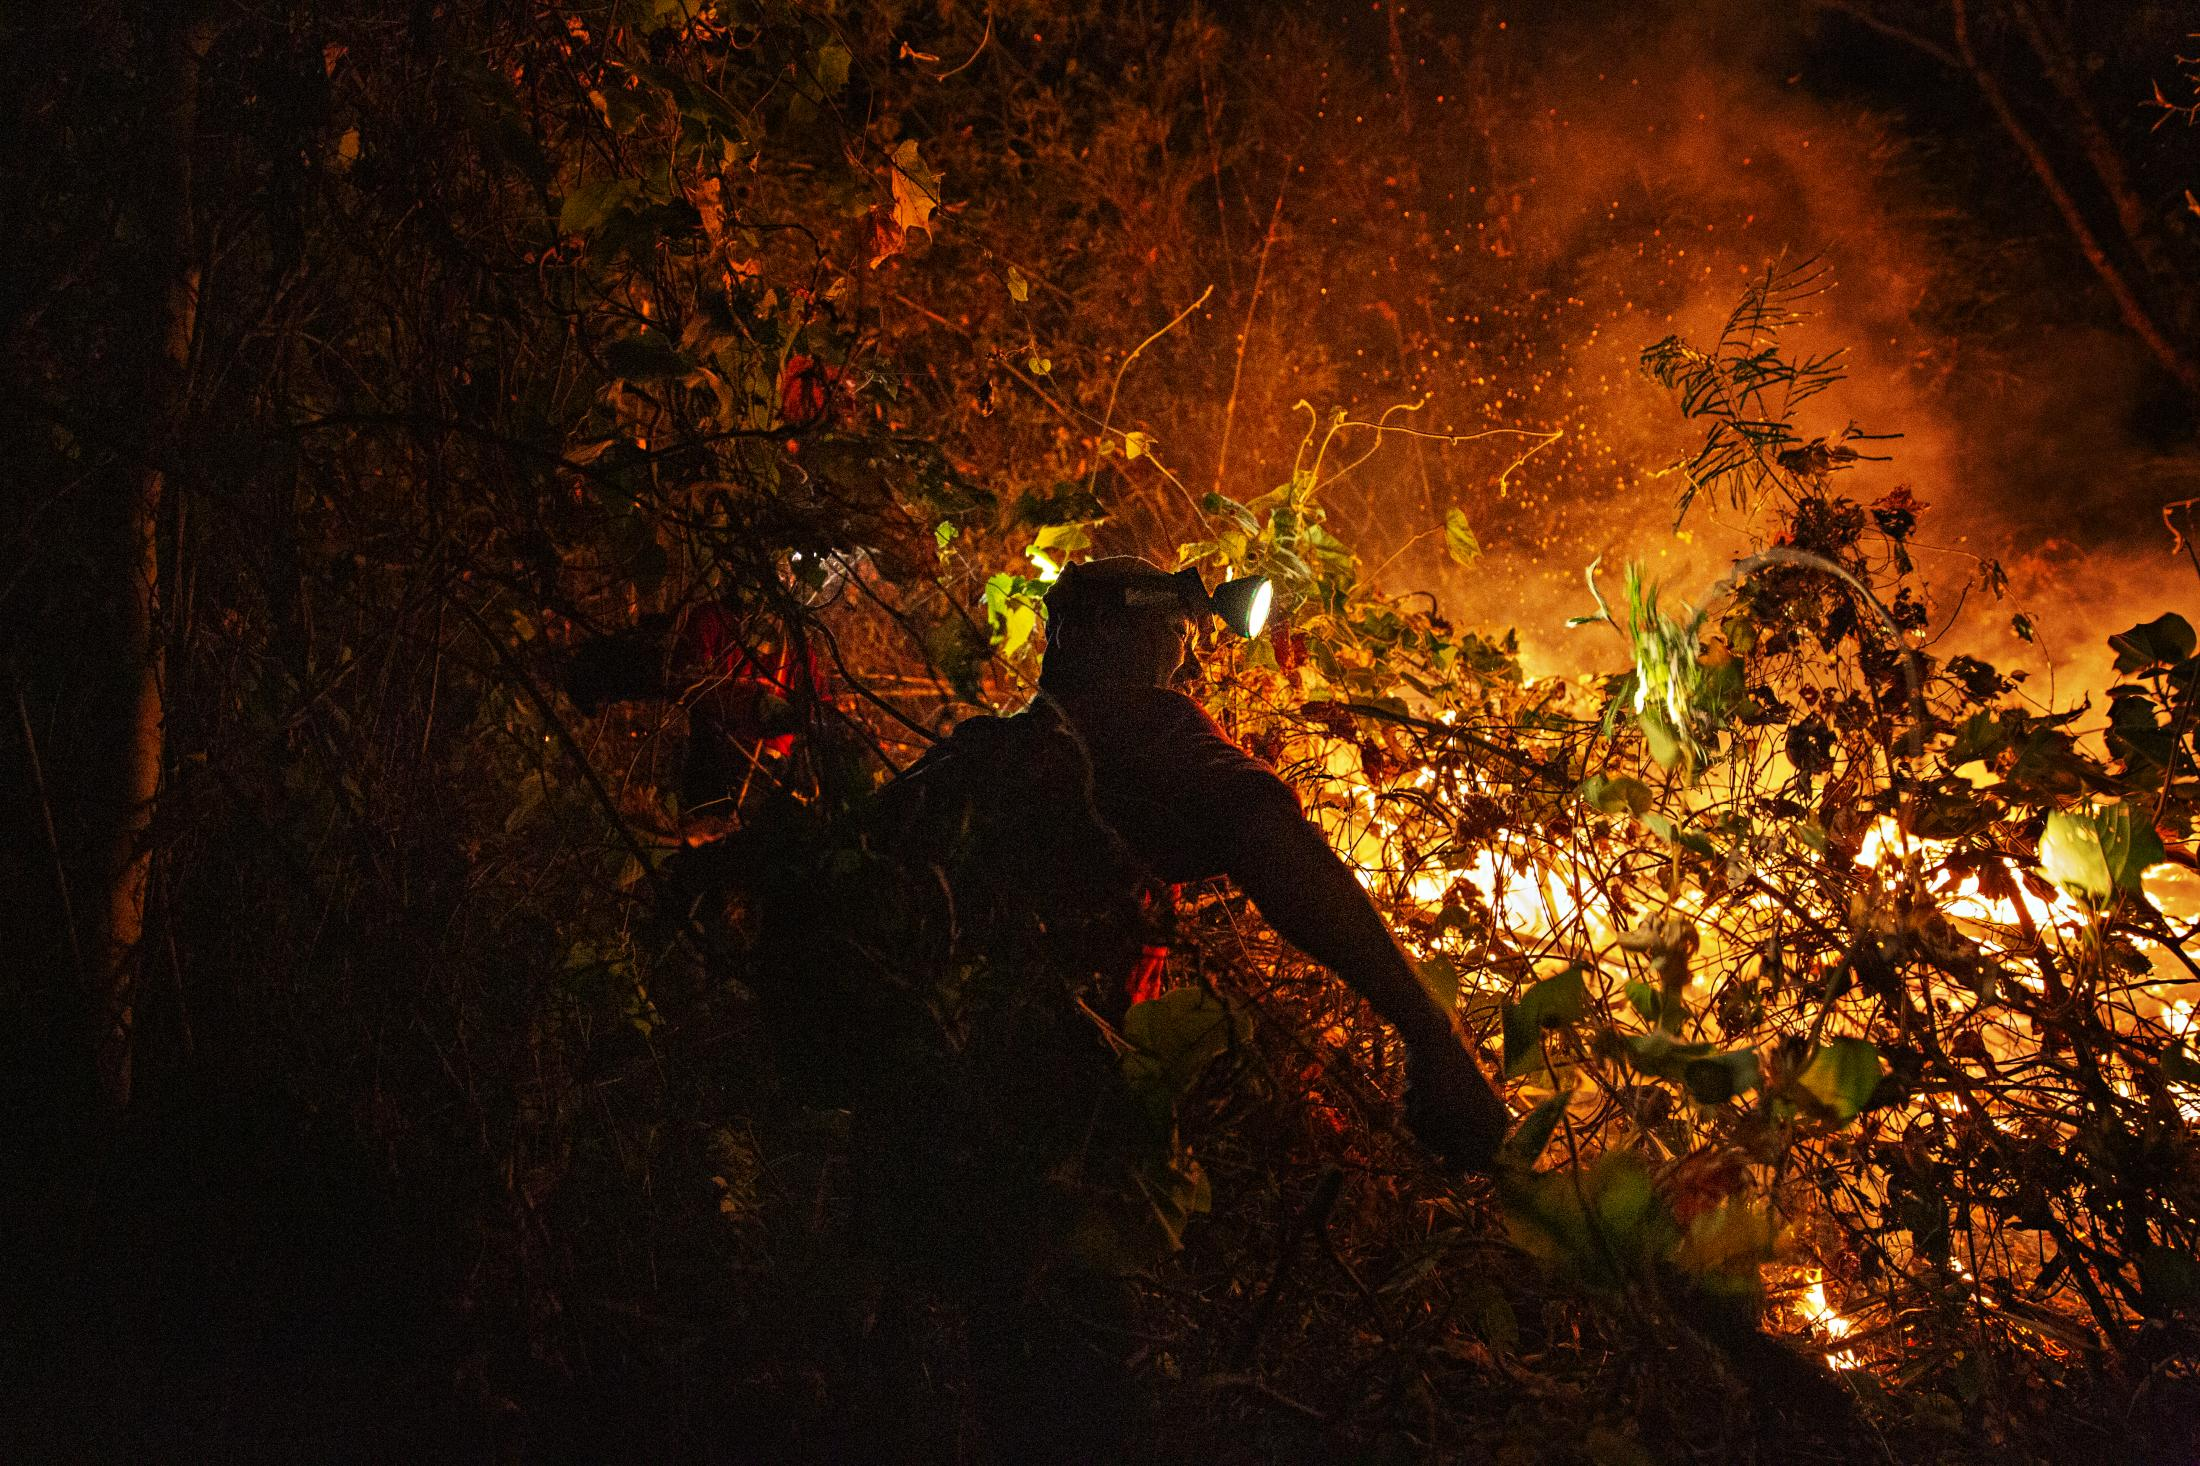 A firefighter battles a blaze in the forests of northern Thailand near the Thai-Myanmar boarder. Hundreds of on-going blazes early in 2019 raised the air-quality index in the region to an all time high of over 500.